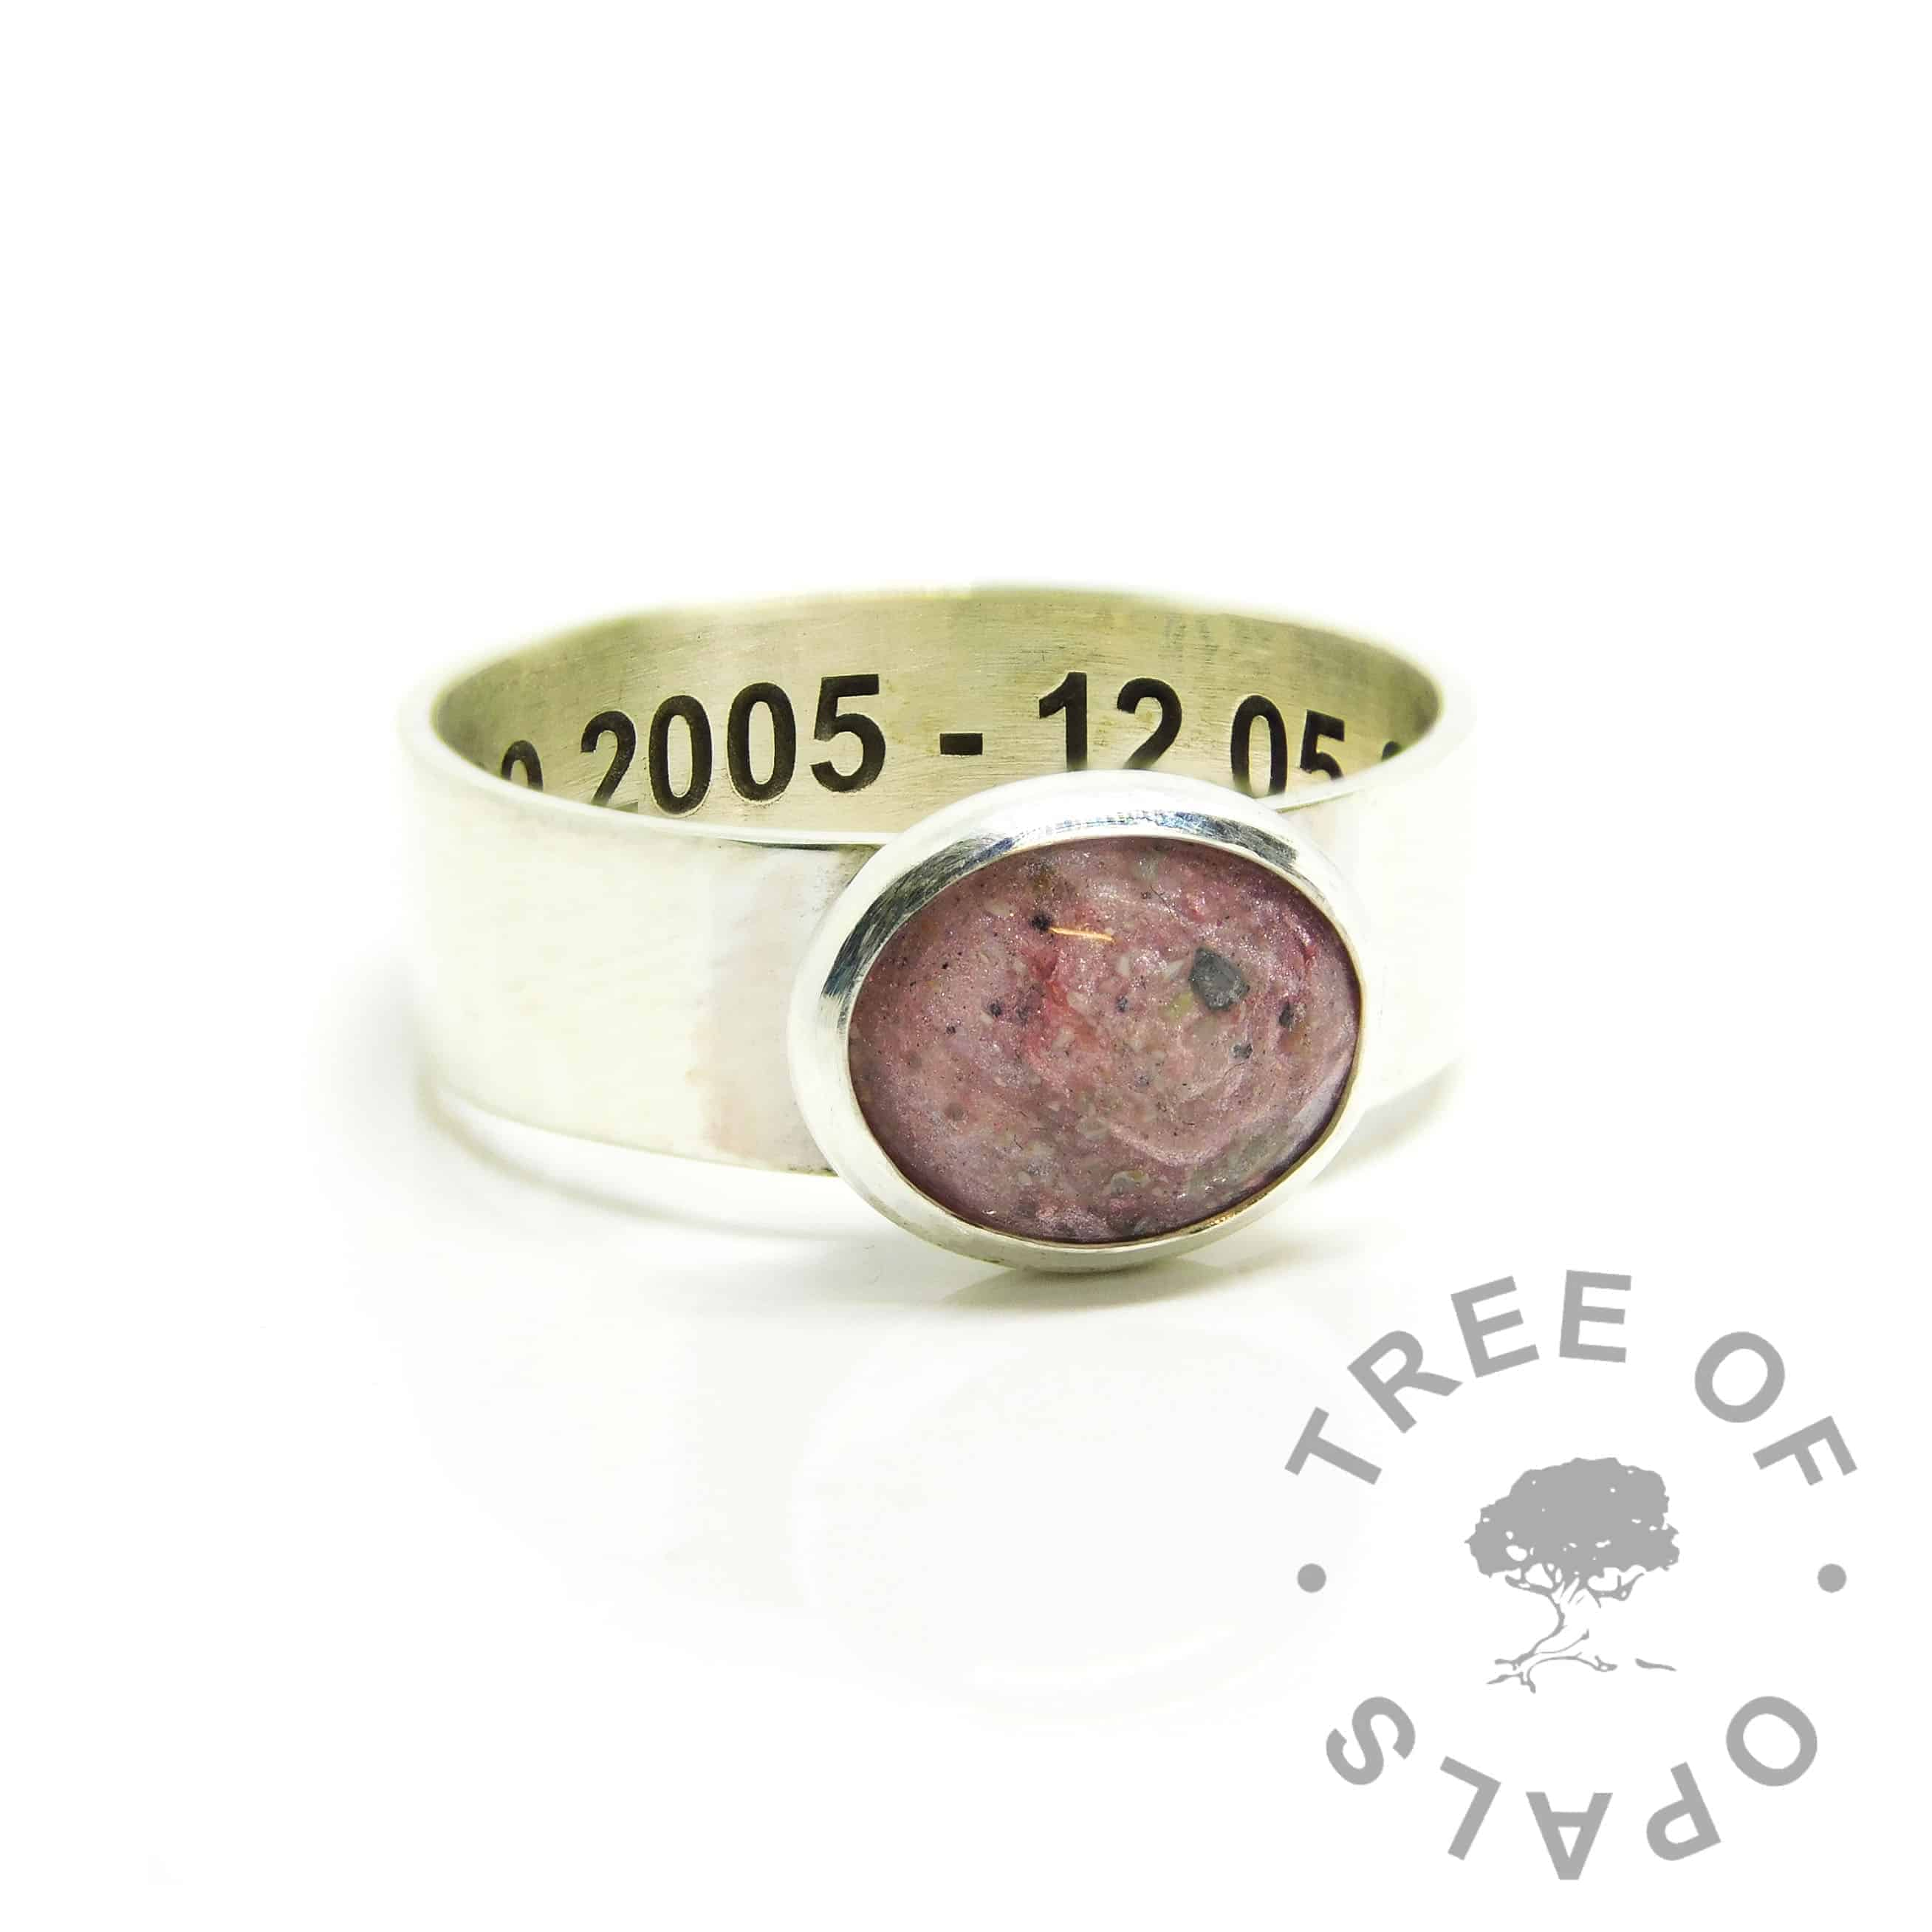 ashes ring pink, fairy pink resin sparkle mix, 6mm shiny band ring setting, engraved inside in arial font